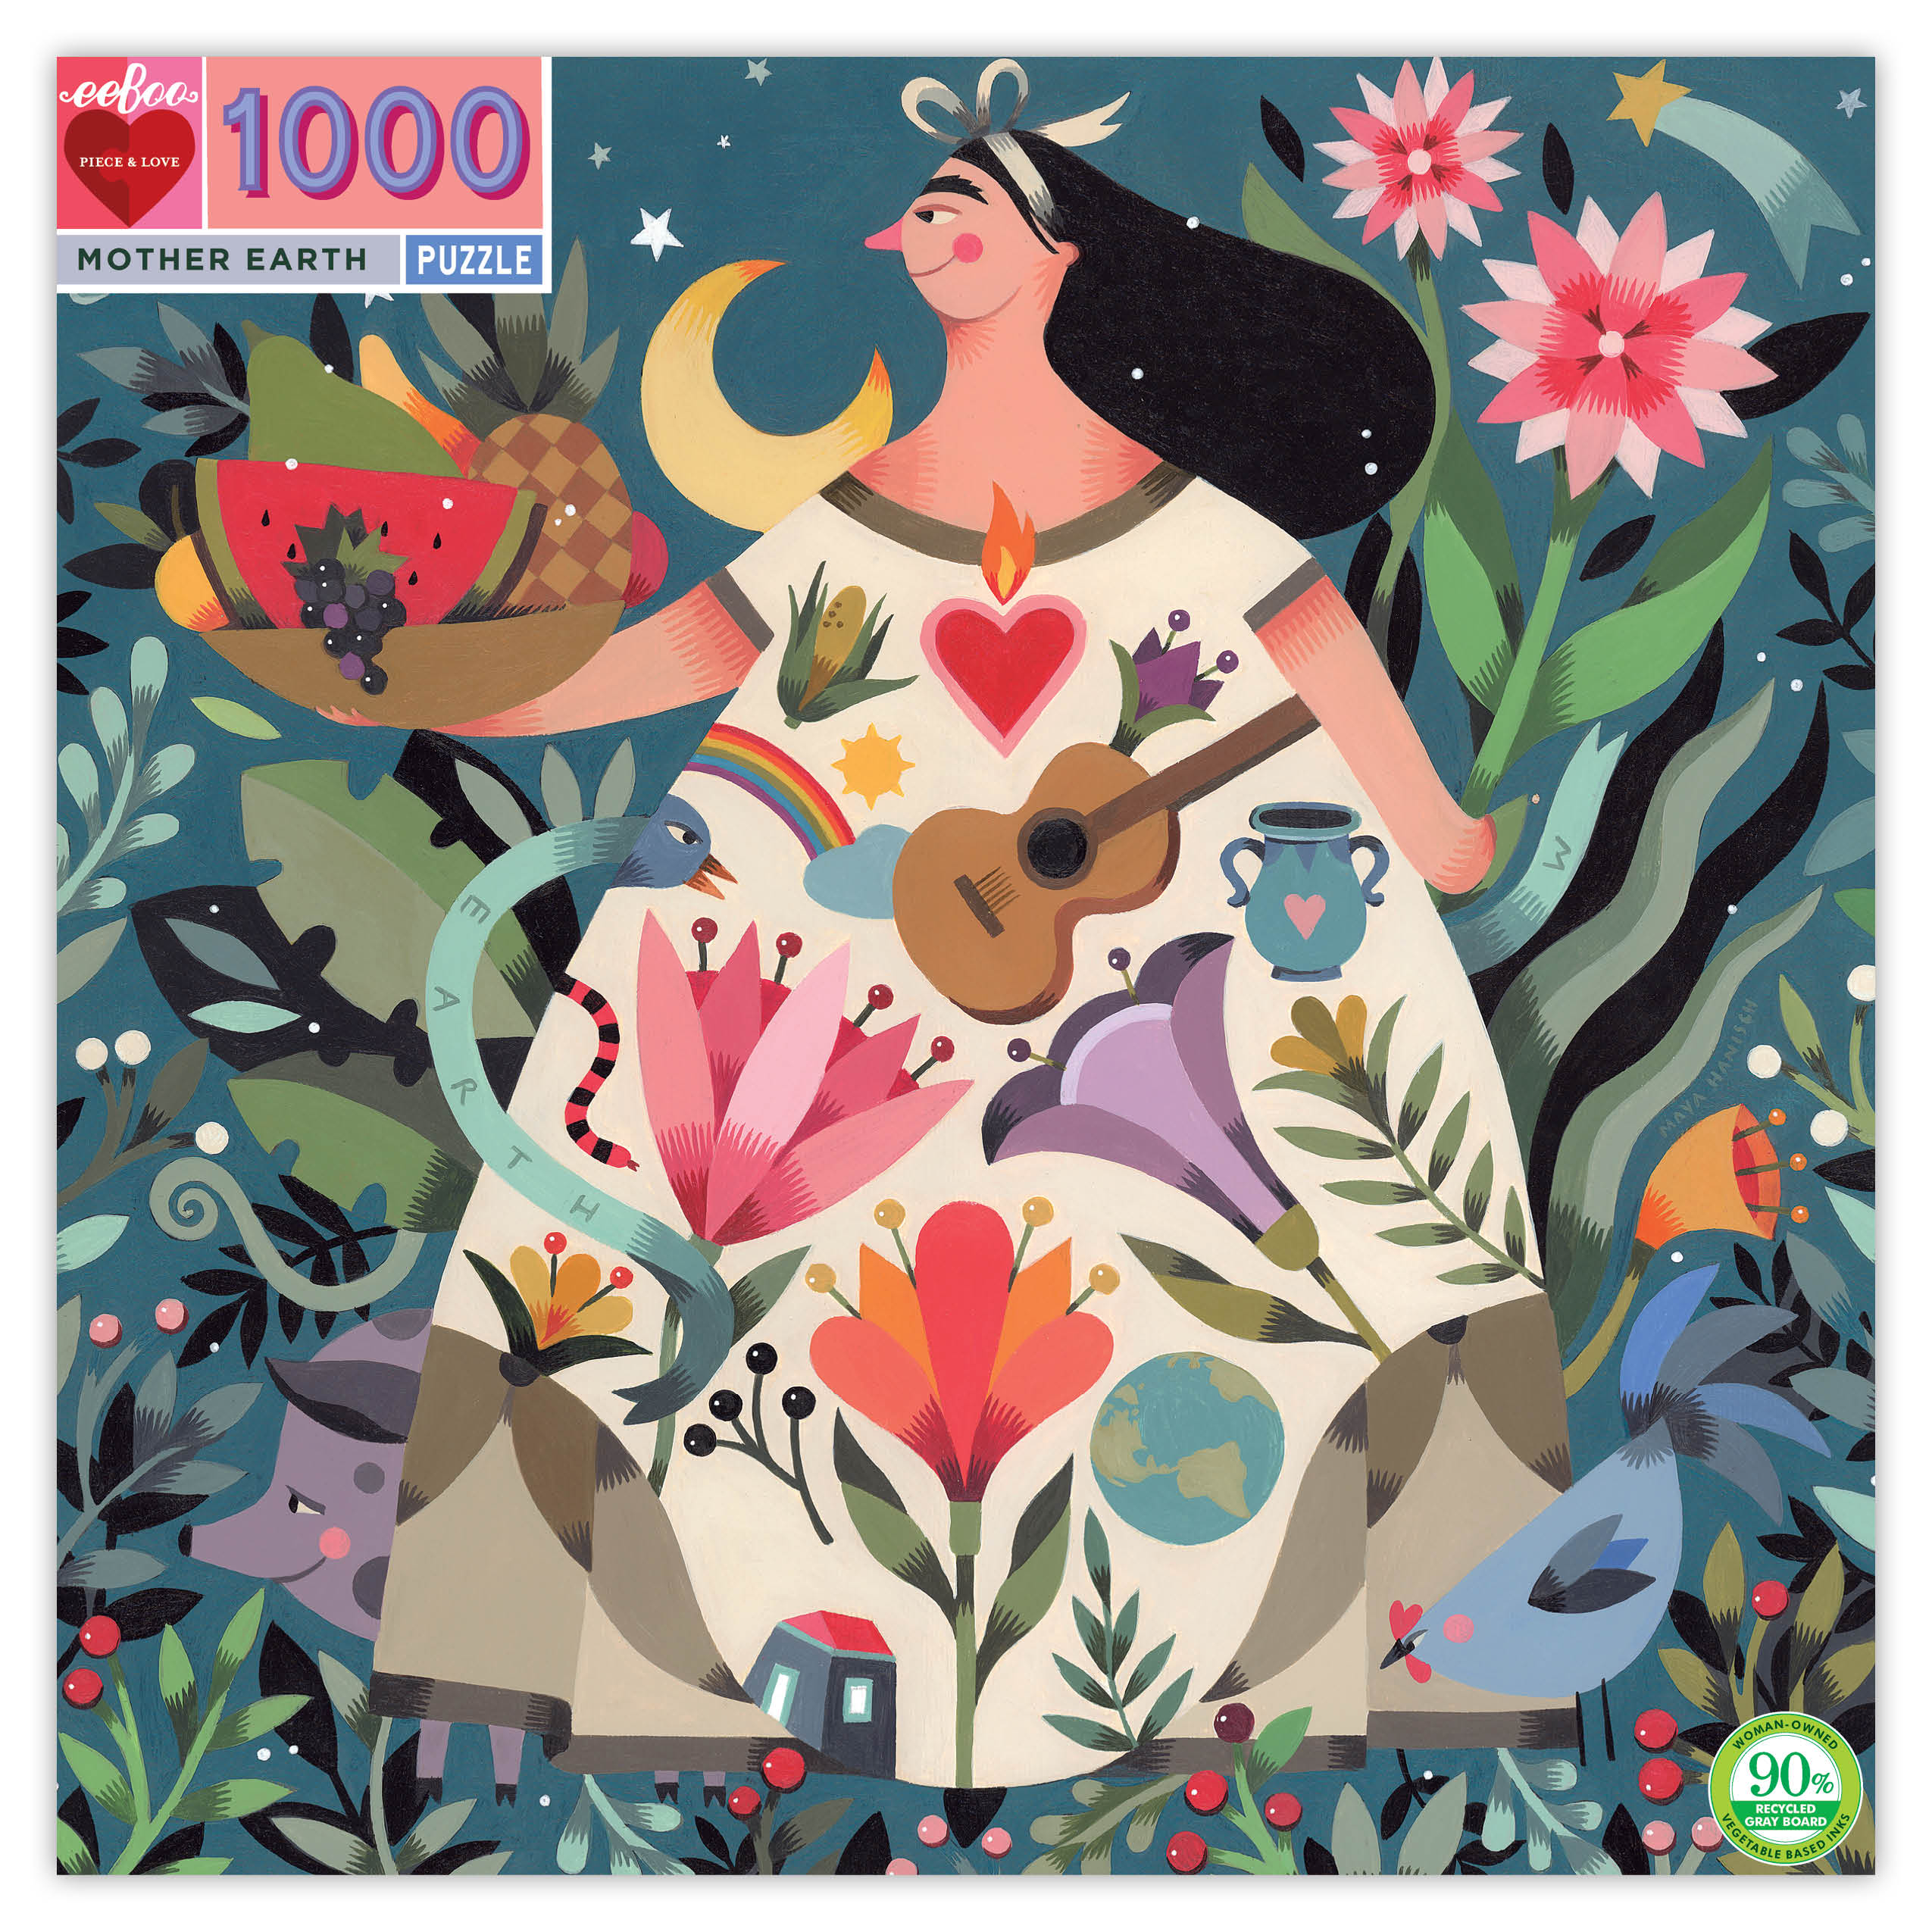 1000 Piece Mother Earth Jigsaw Puzzle